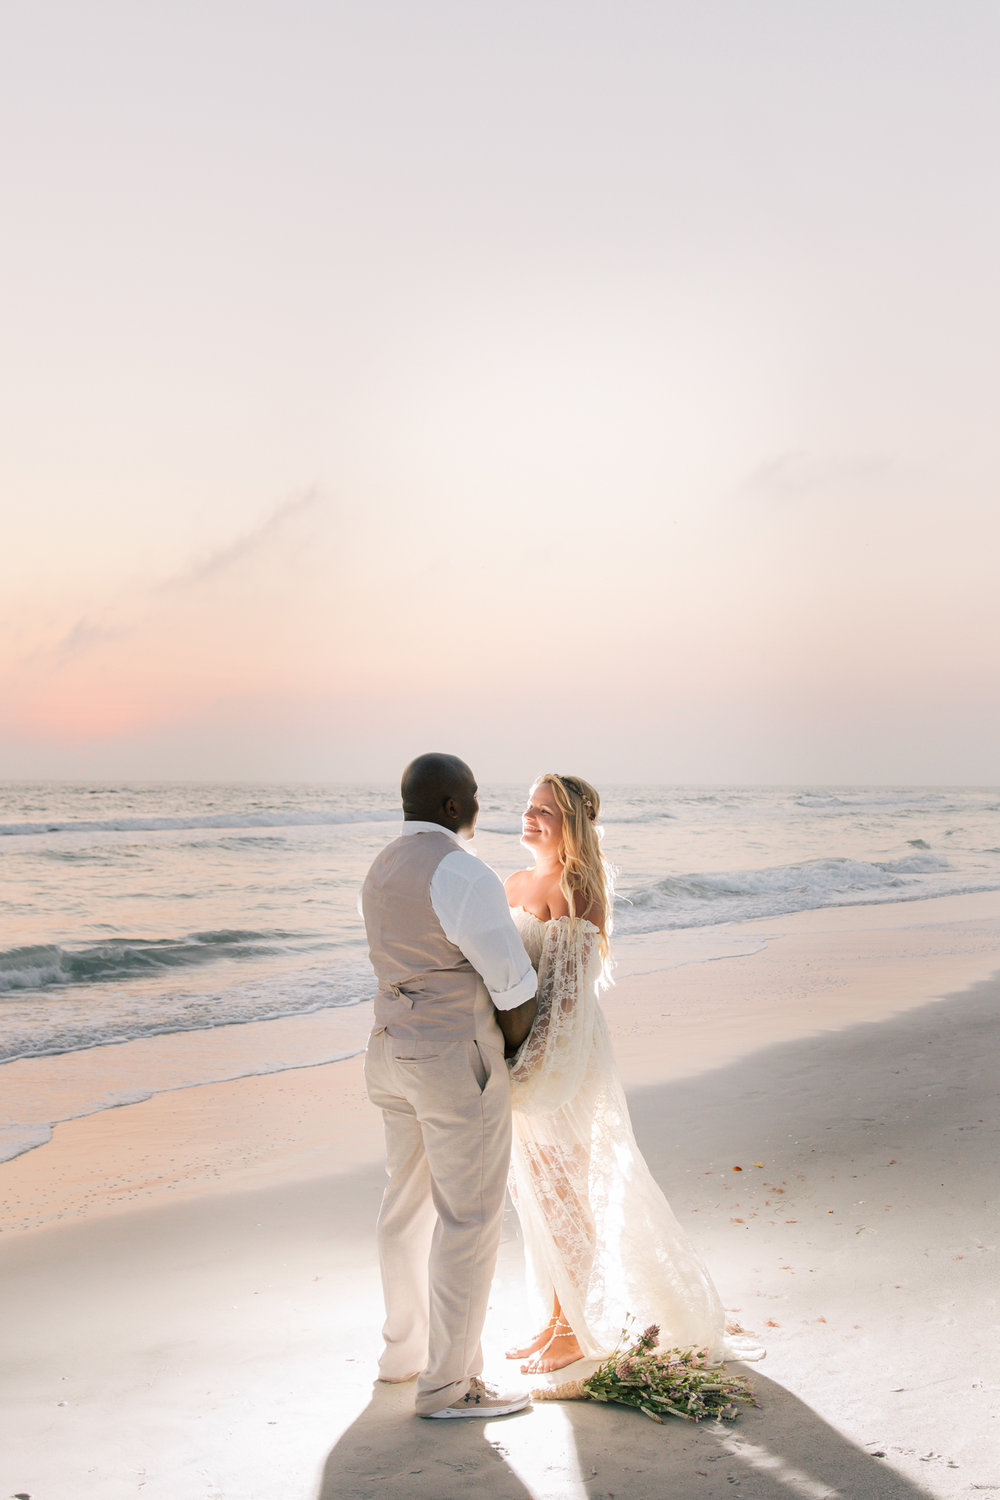 vow-renewal-beach-ceremony-tampa-wedding-photographer